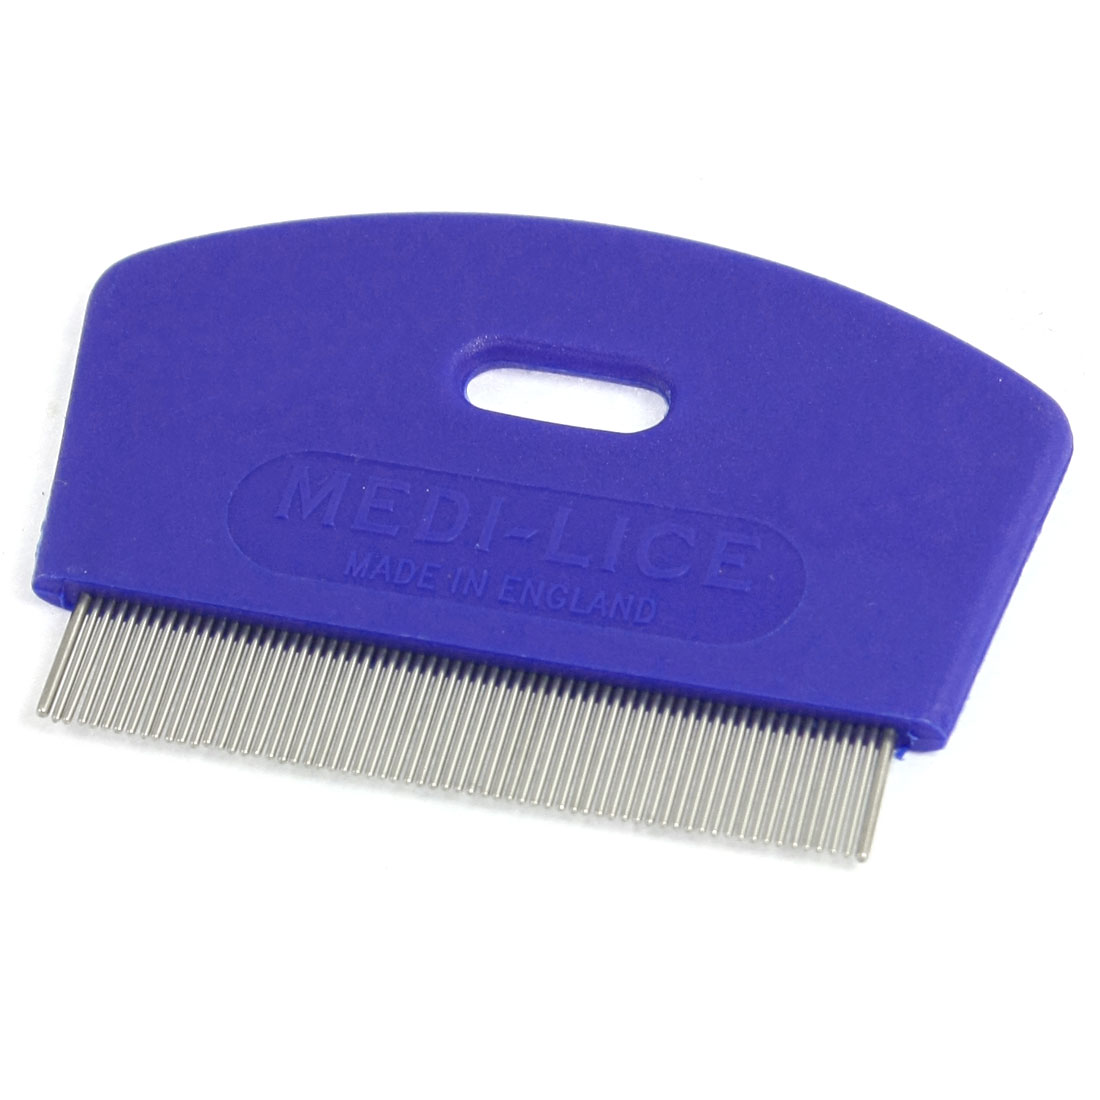 Blue Plastic Grooming Shedding Rake Comb for Cat Dog Pet